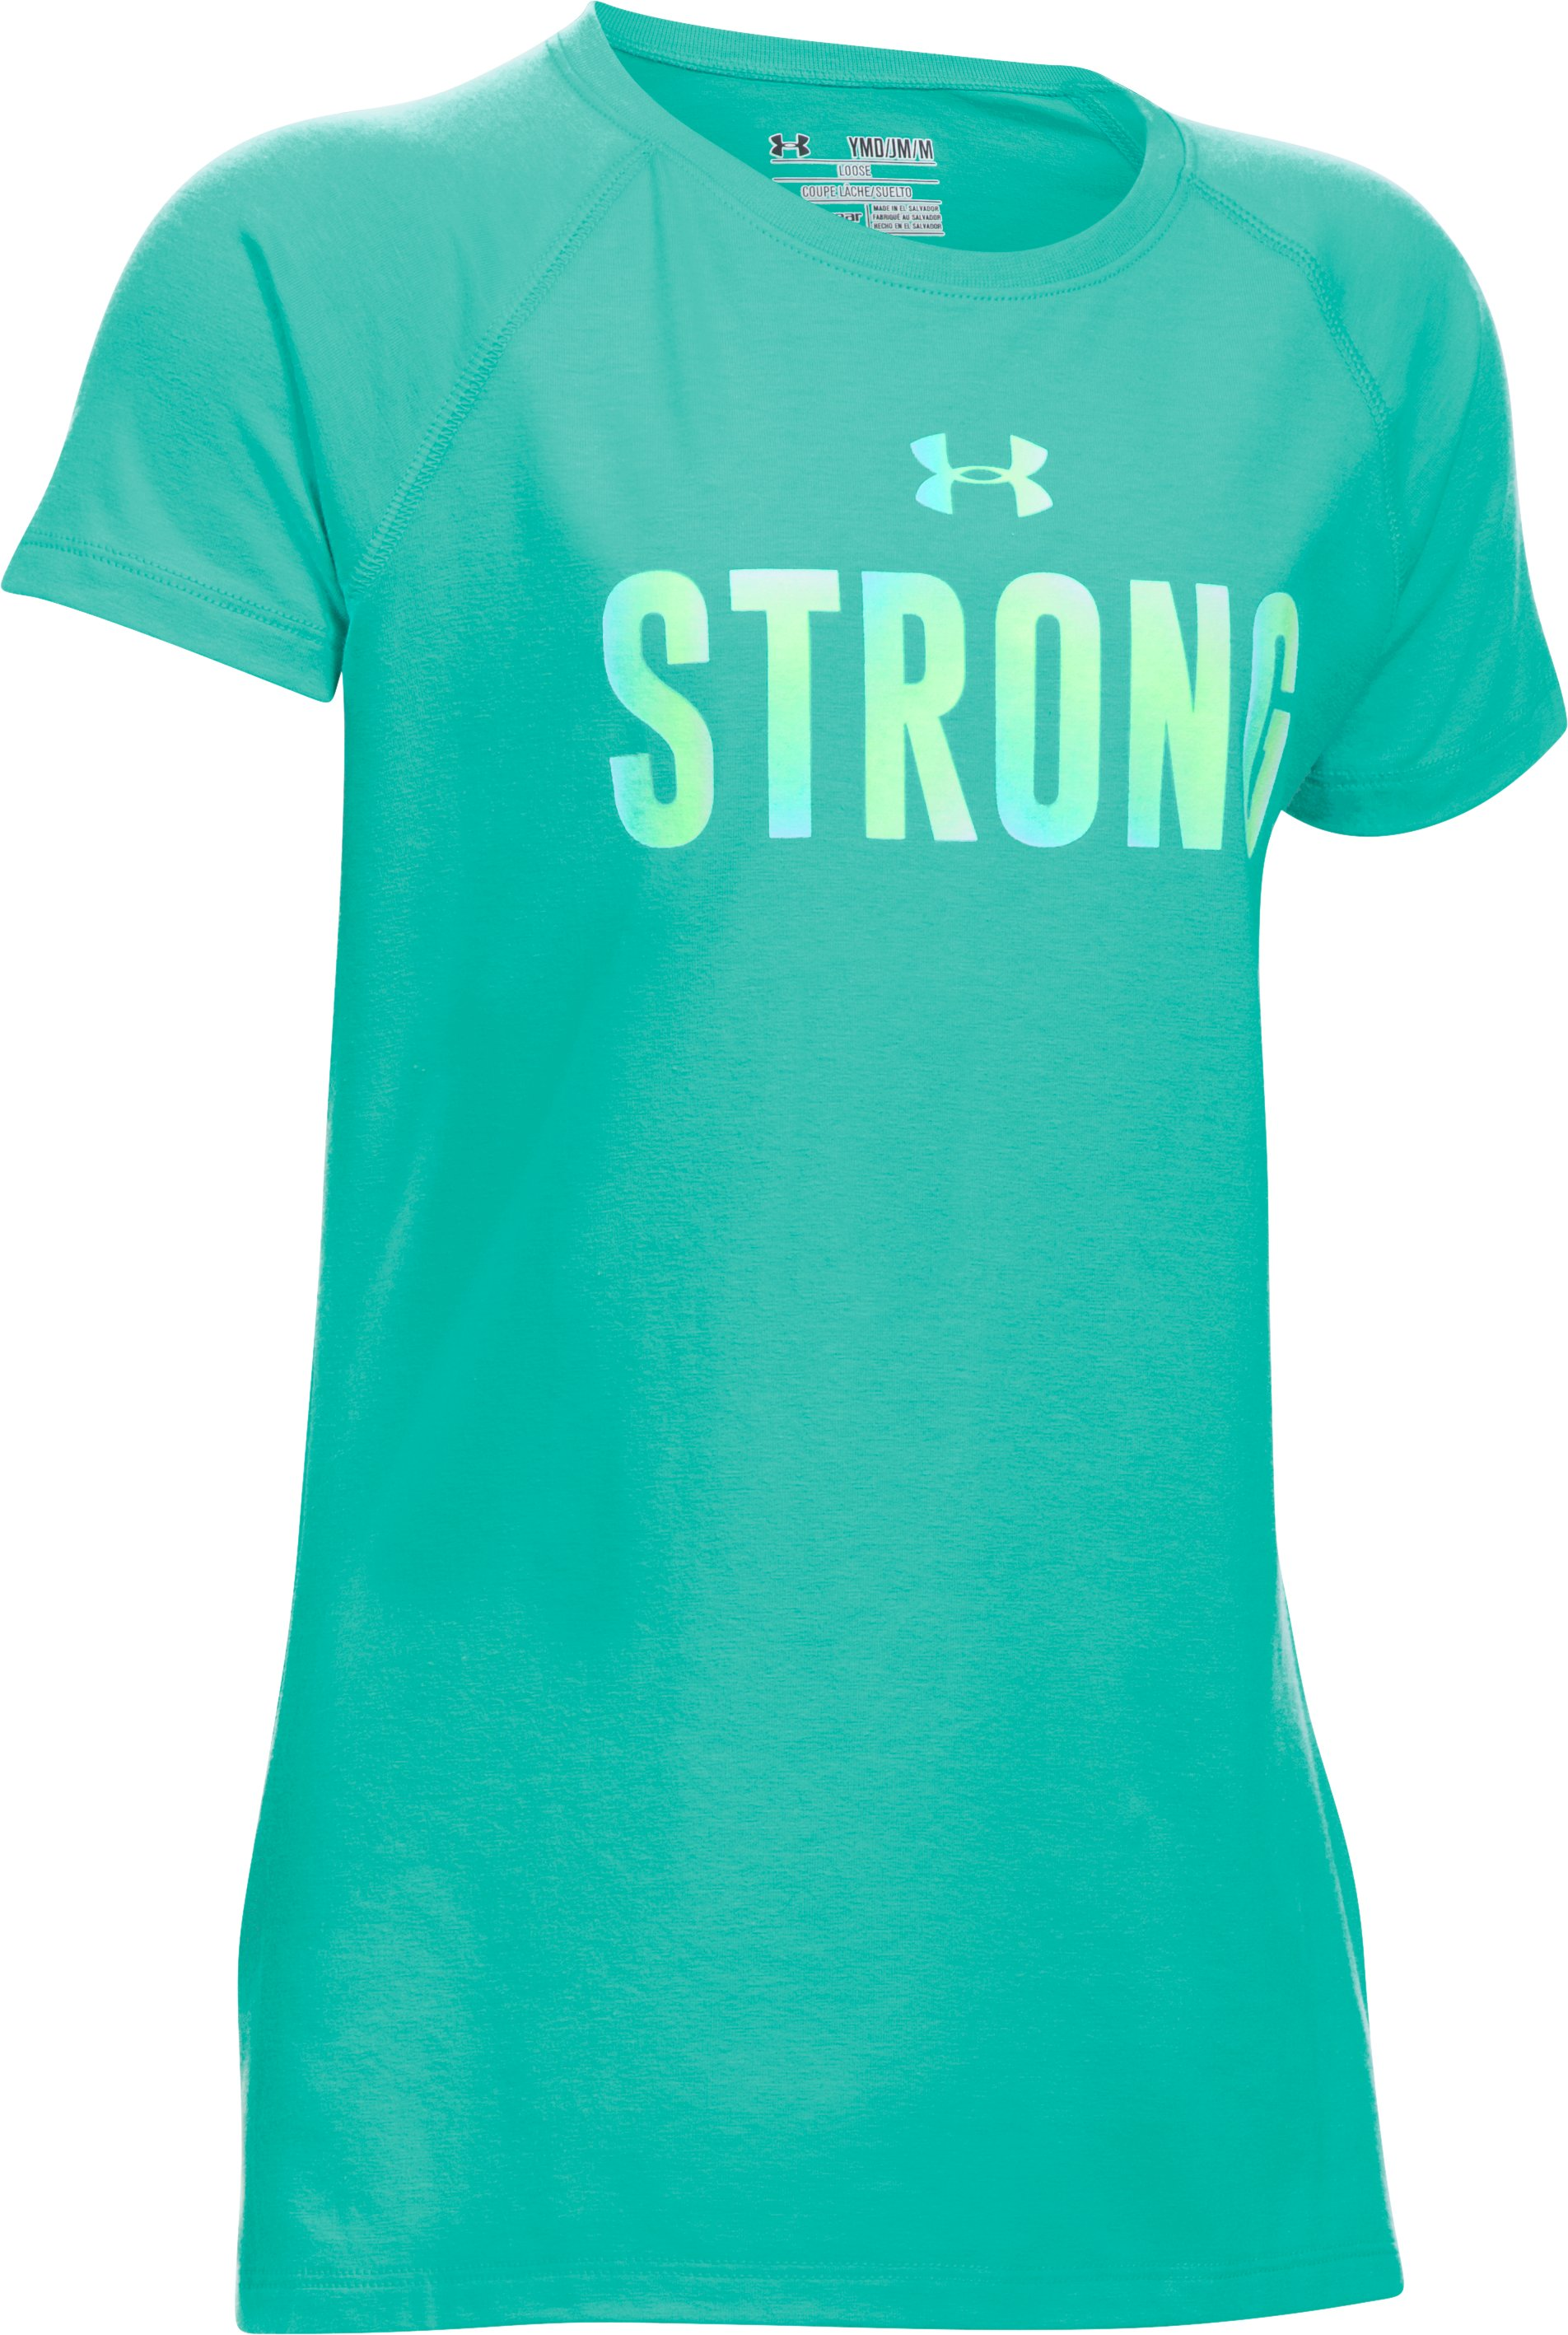 Girls' UA Strong Girl Short Sleeve T-Shirt, Mosaic,